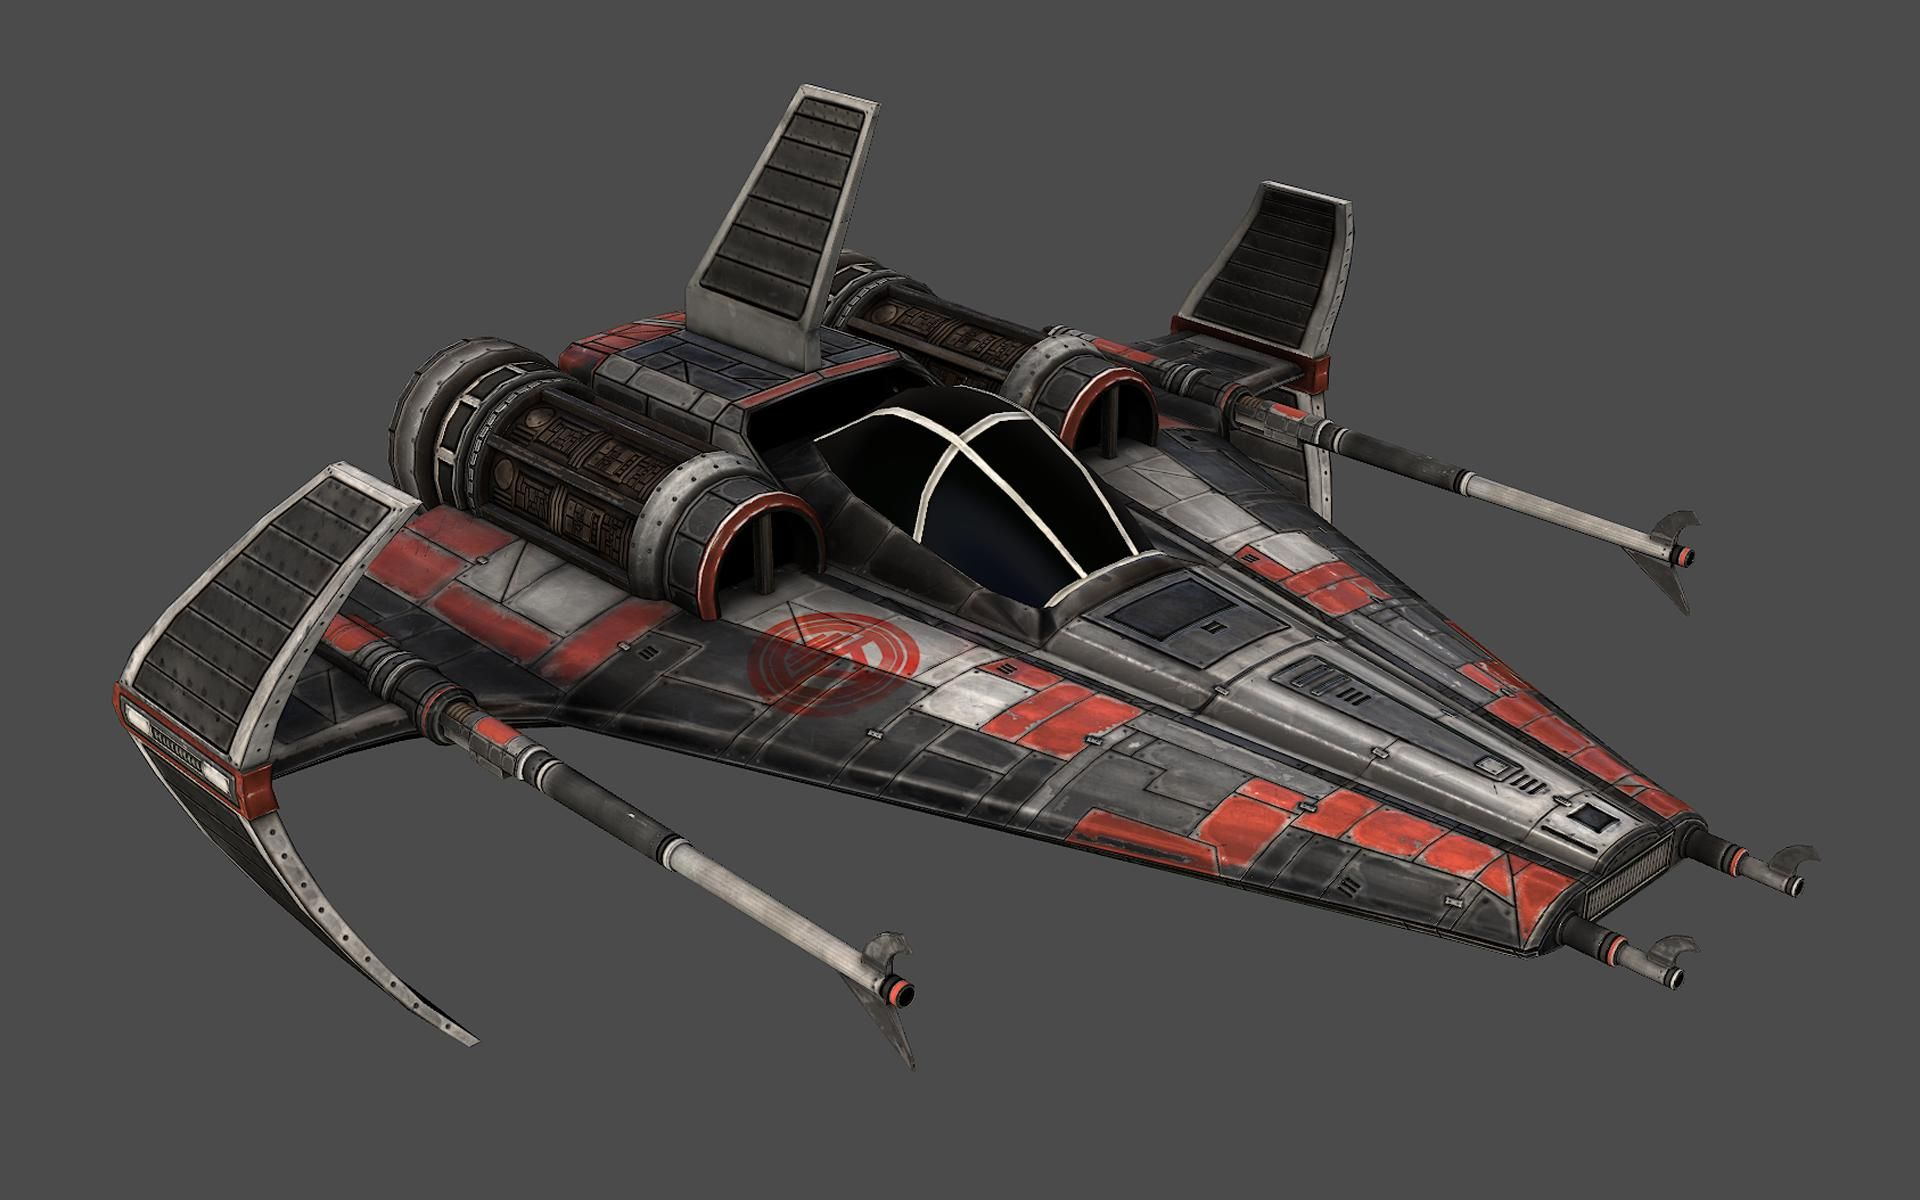 concept space fighter - Google Search